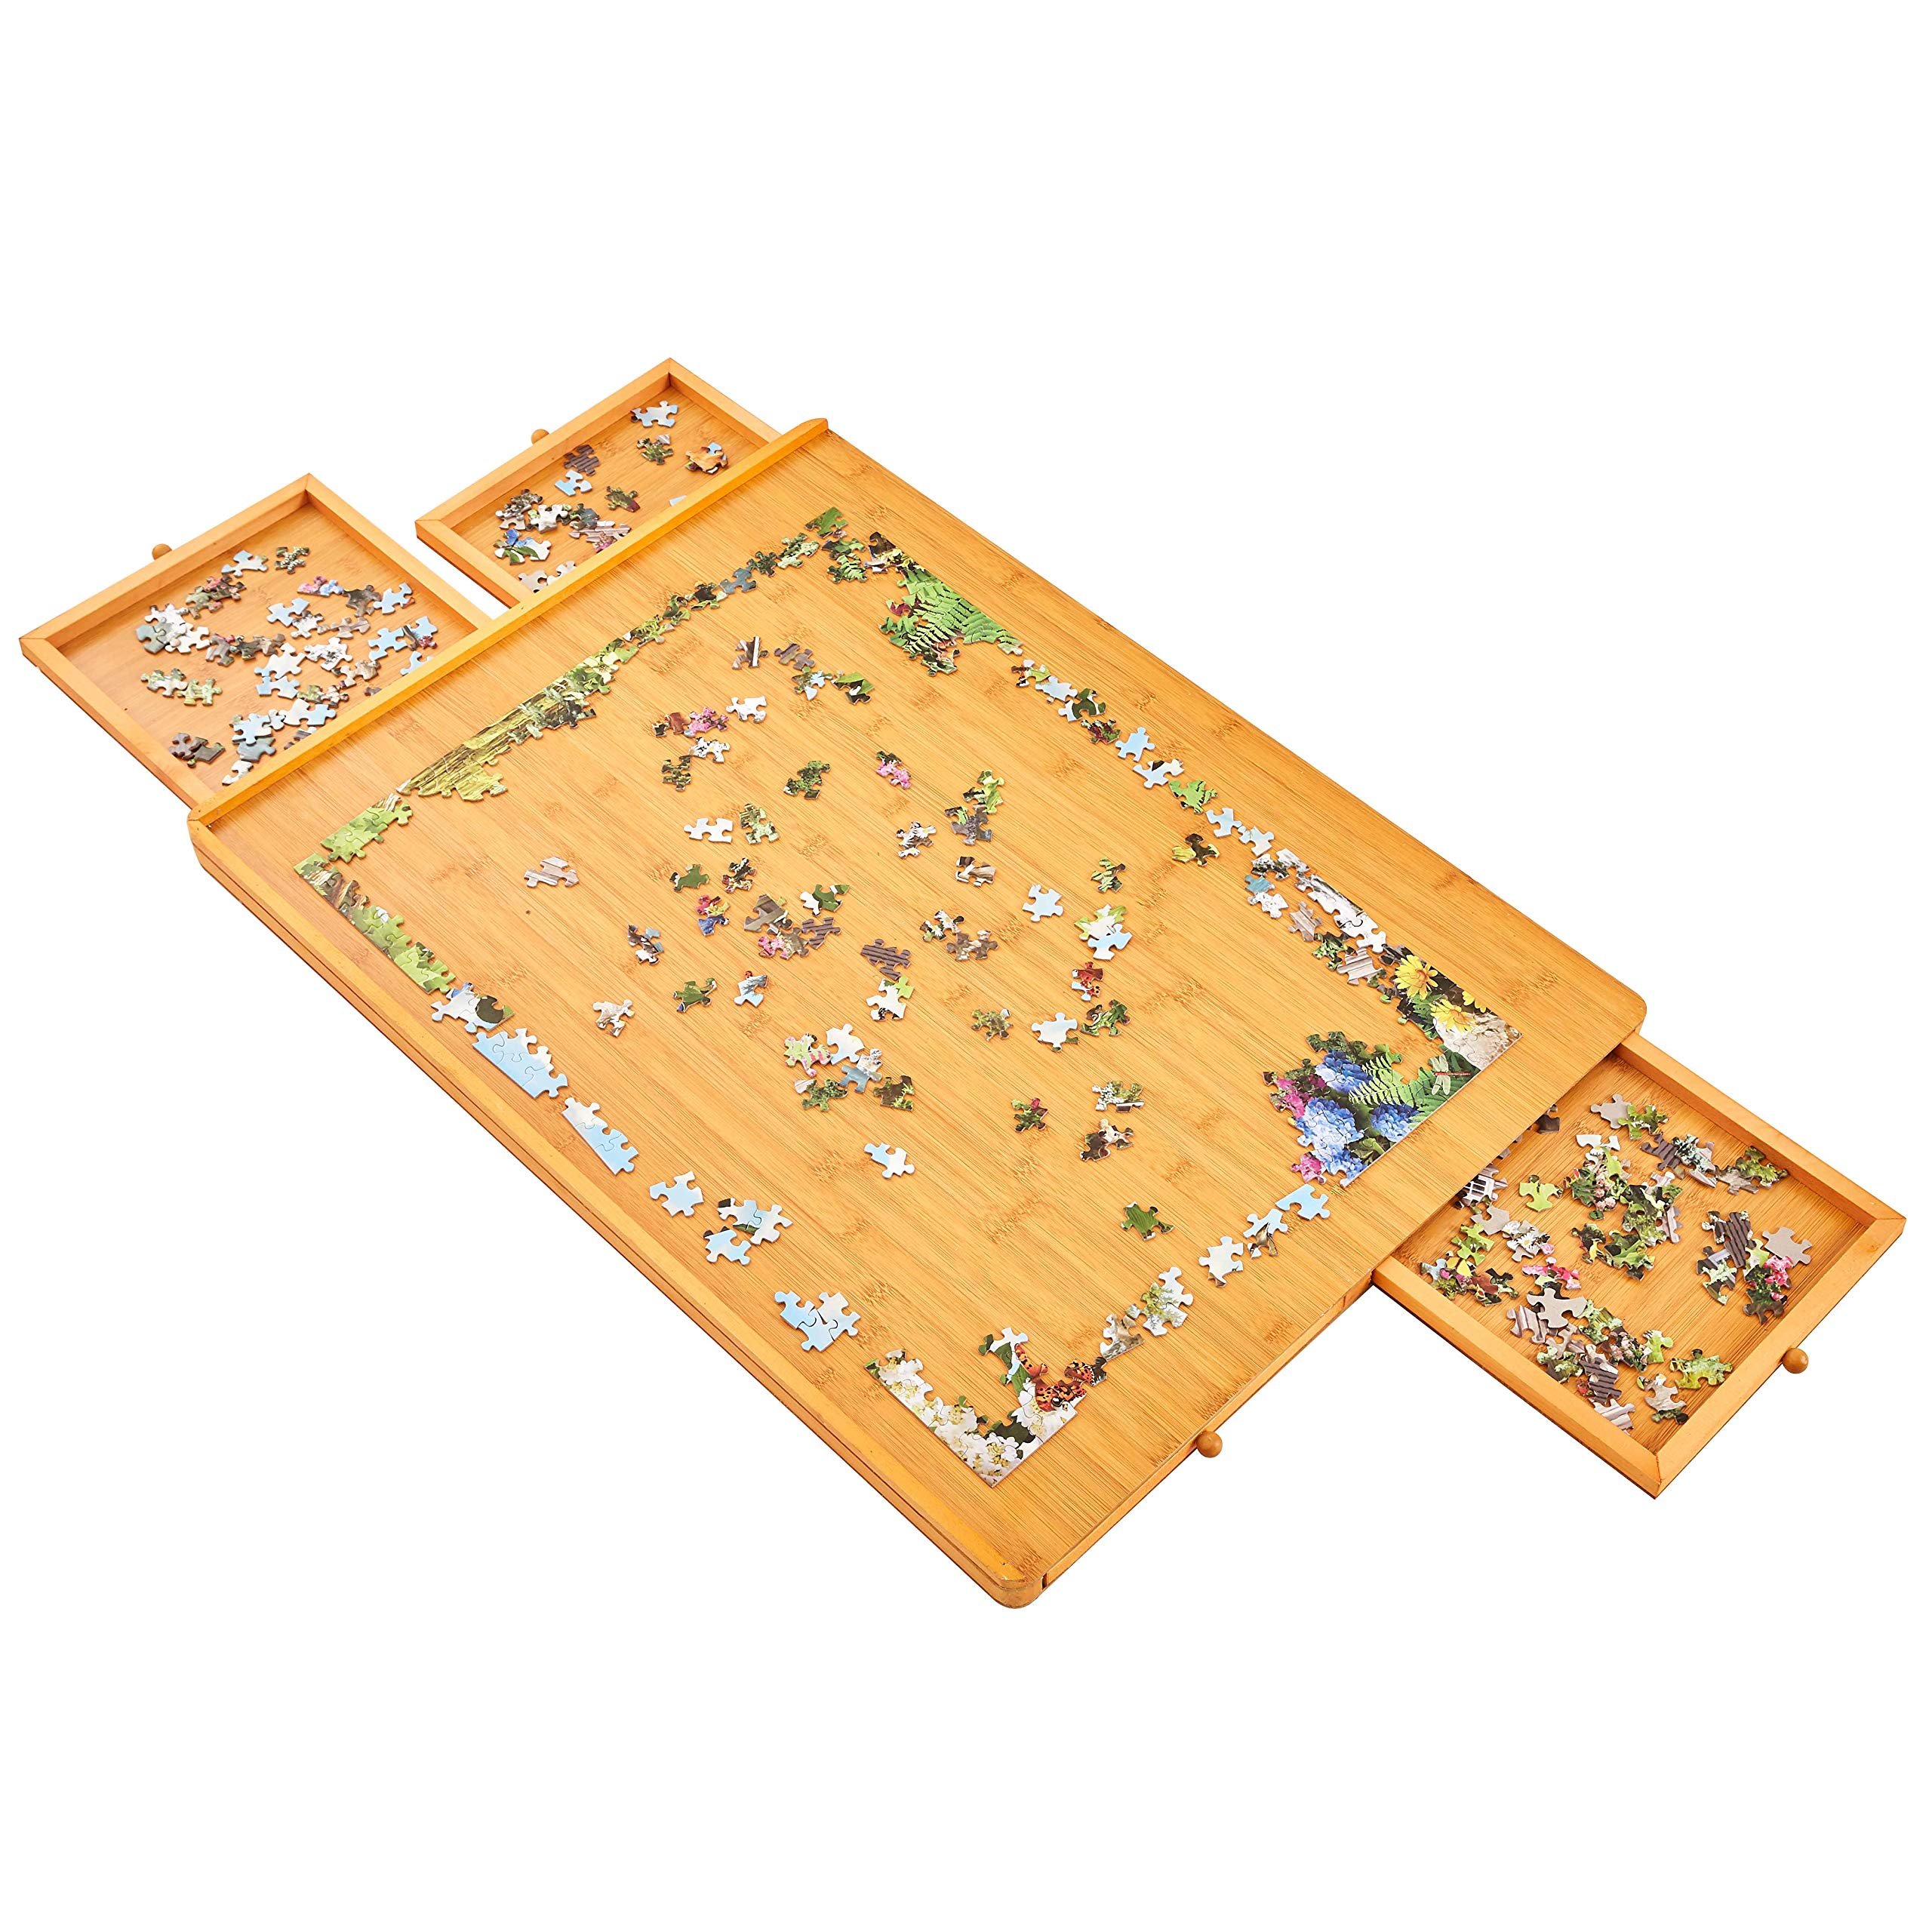 30''×22'' for Maximum 1000 Pieces Puzzles, Puzzle Board, Puzzle Table, Puzzle Tables for Adults, Puzzle Boards and Storage, Jigsaw Puzzle Table, Puzzle Tray, Smooth Coating, Bamboo Finish by Rose Home Fashion